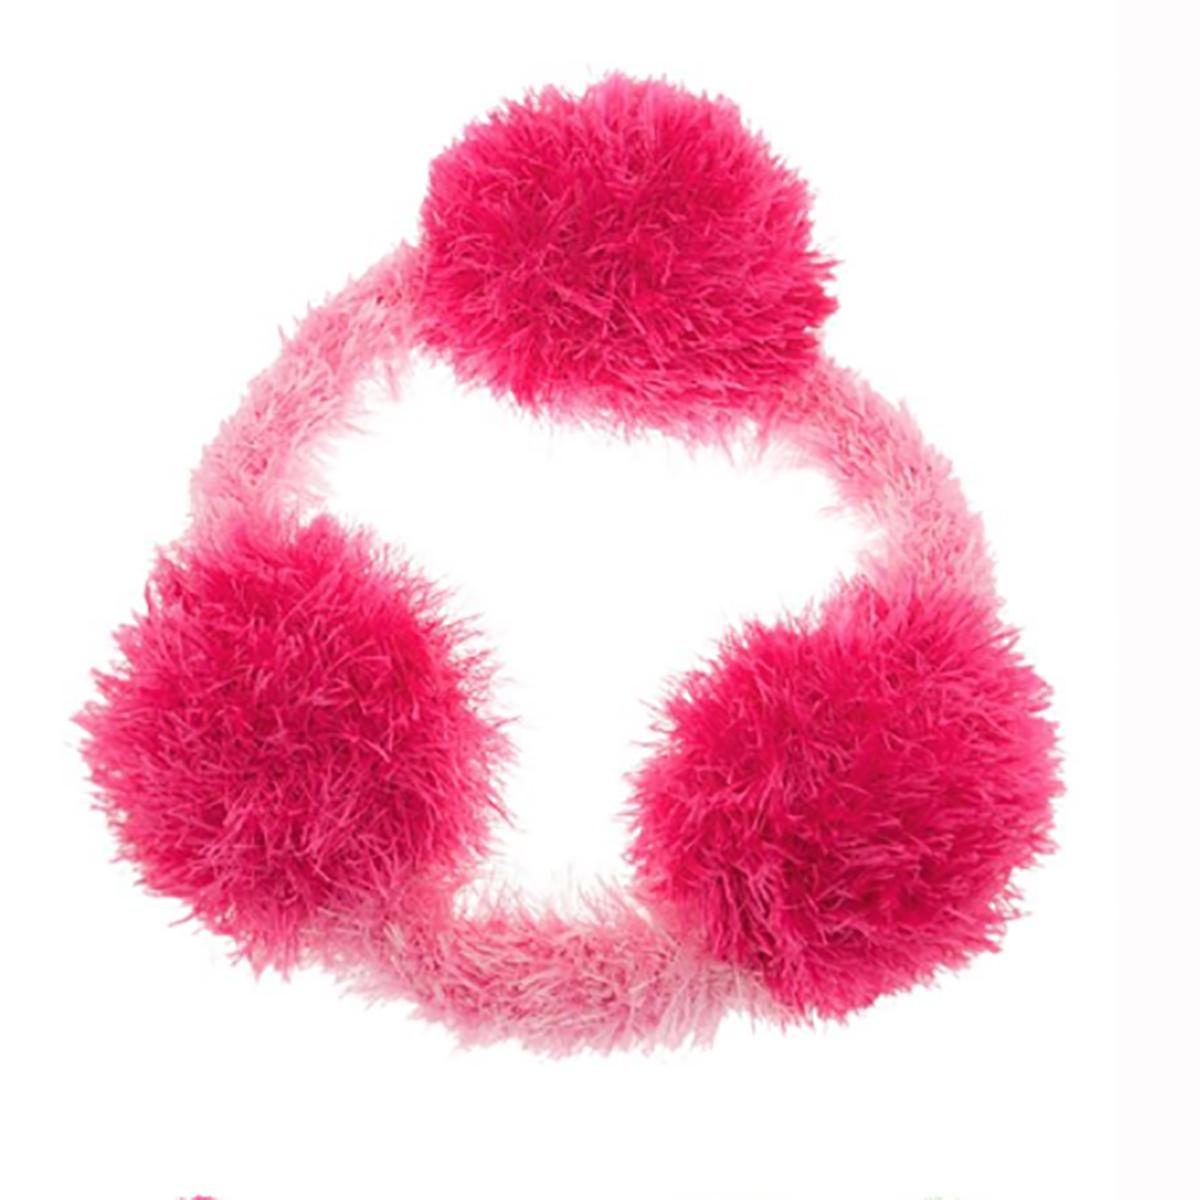 OoMaLoo Handmade Pull Ring Dog Toy - Pink with Light Pink Ring